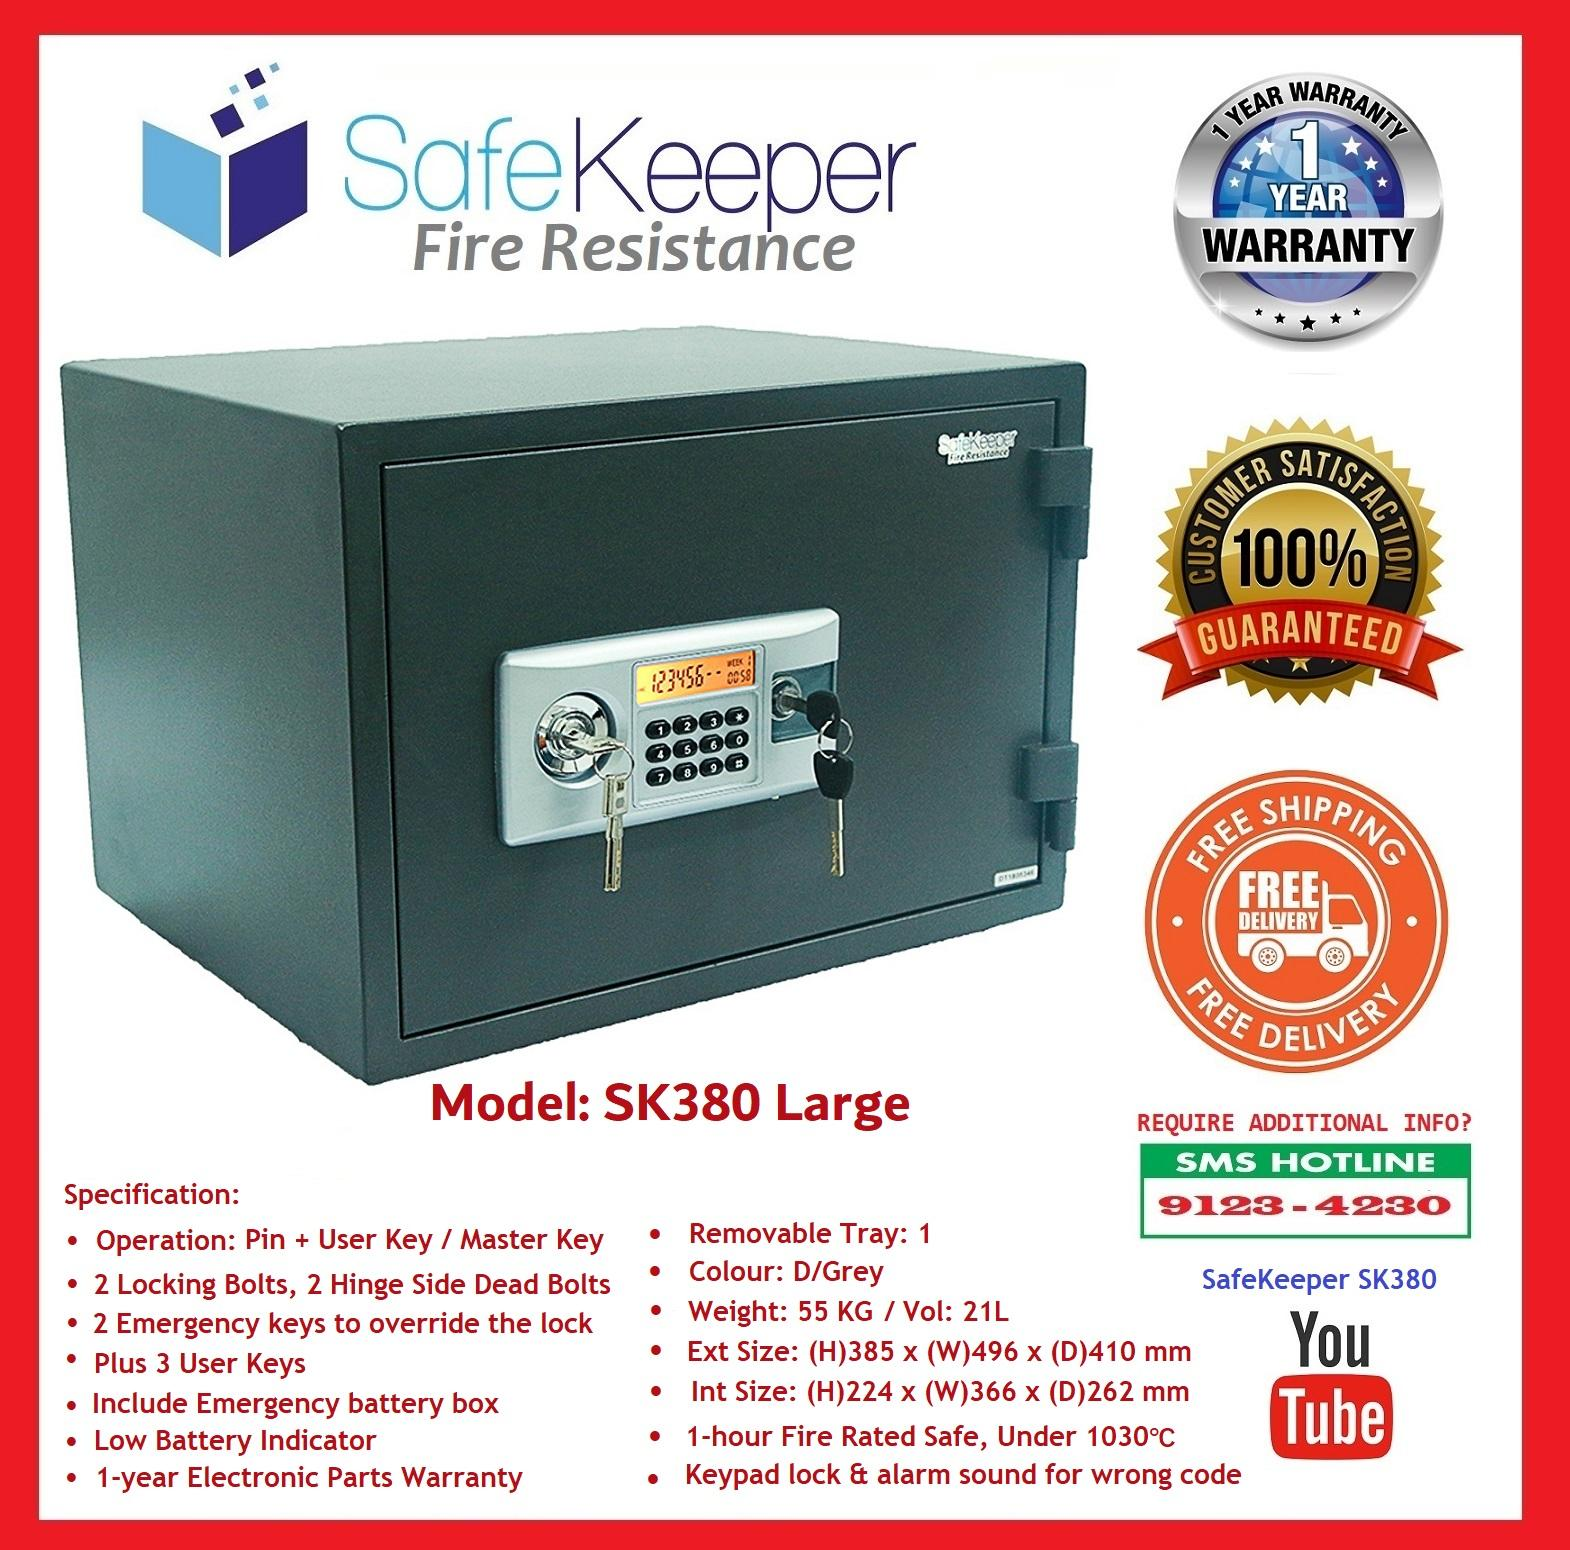 SafeKeeper Fire Resistance Safe ~ SK380 Large ~ New Product ~ Weight: 55 KG ( Color: D/Grey ) SG Seller ~ Free Delivery ~ 3 Working Day!